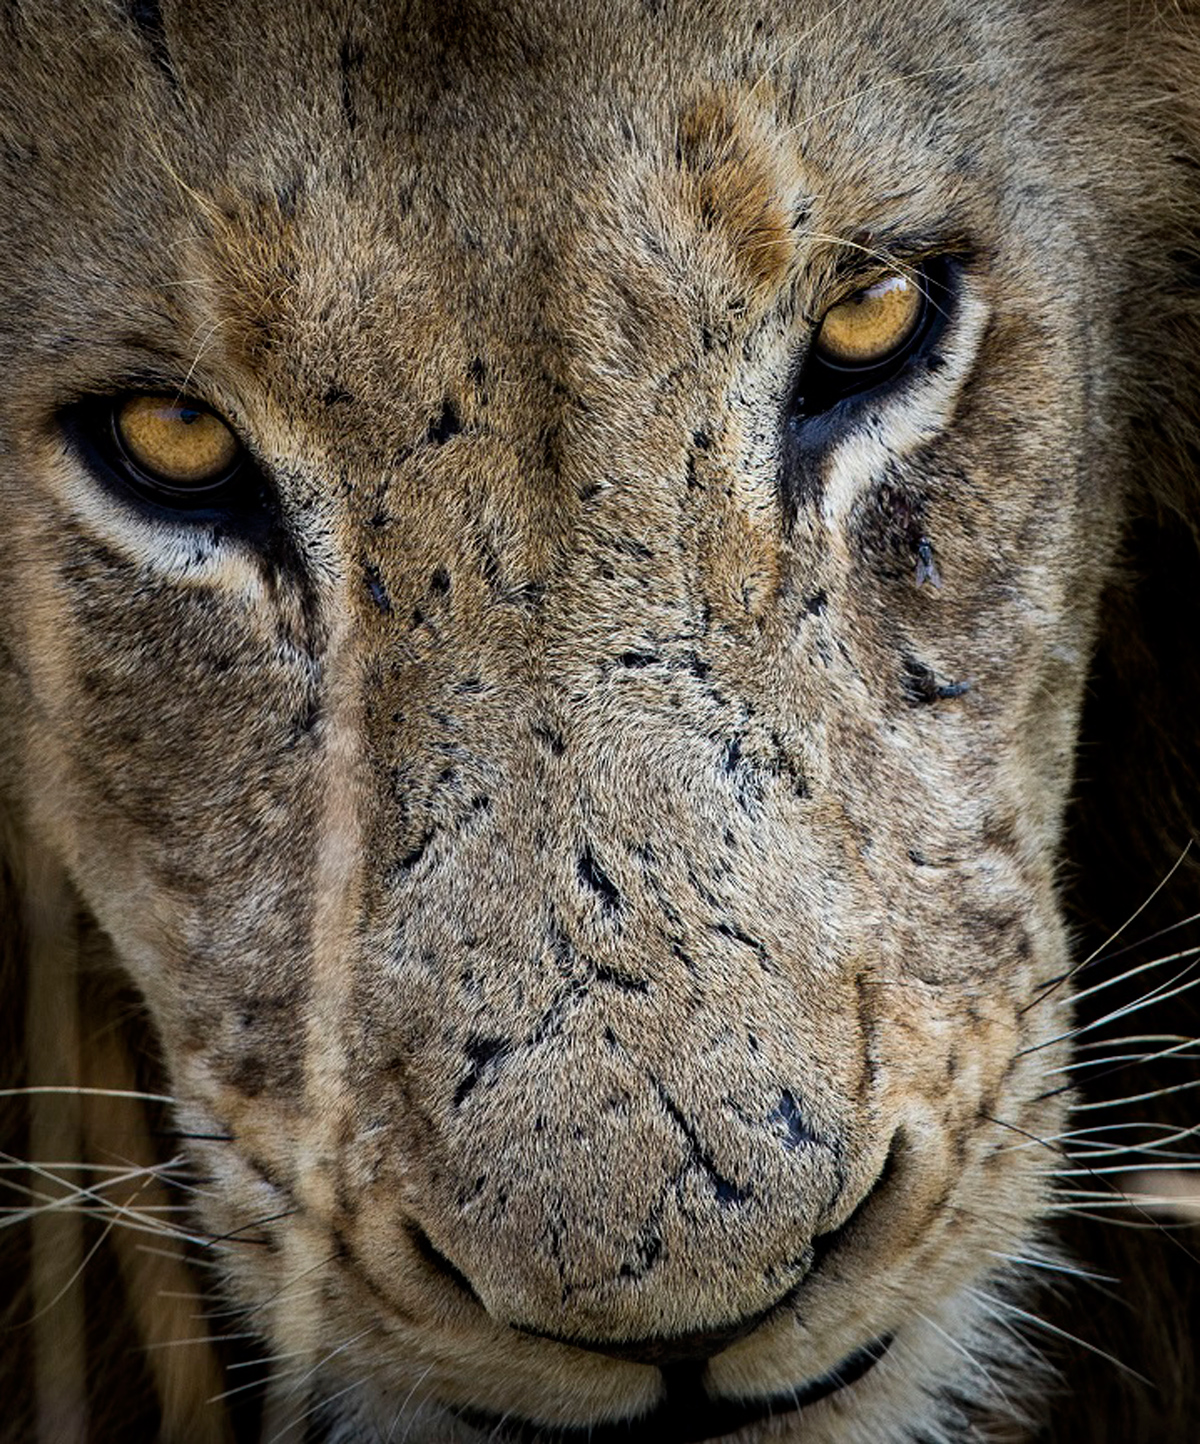 Lion portrait taken in Manyeleti Game Reserve, South Africa © Armand Grobler